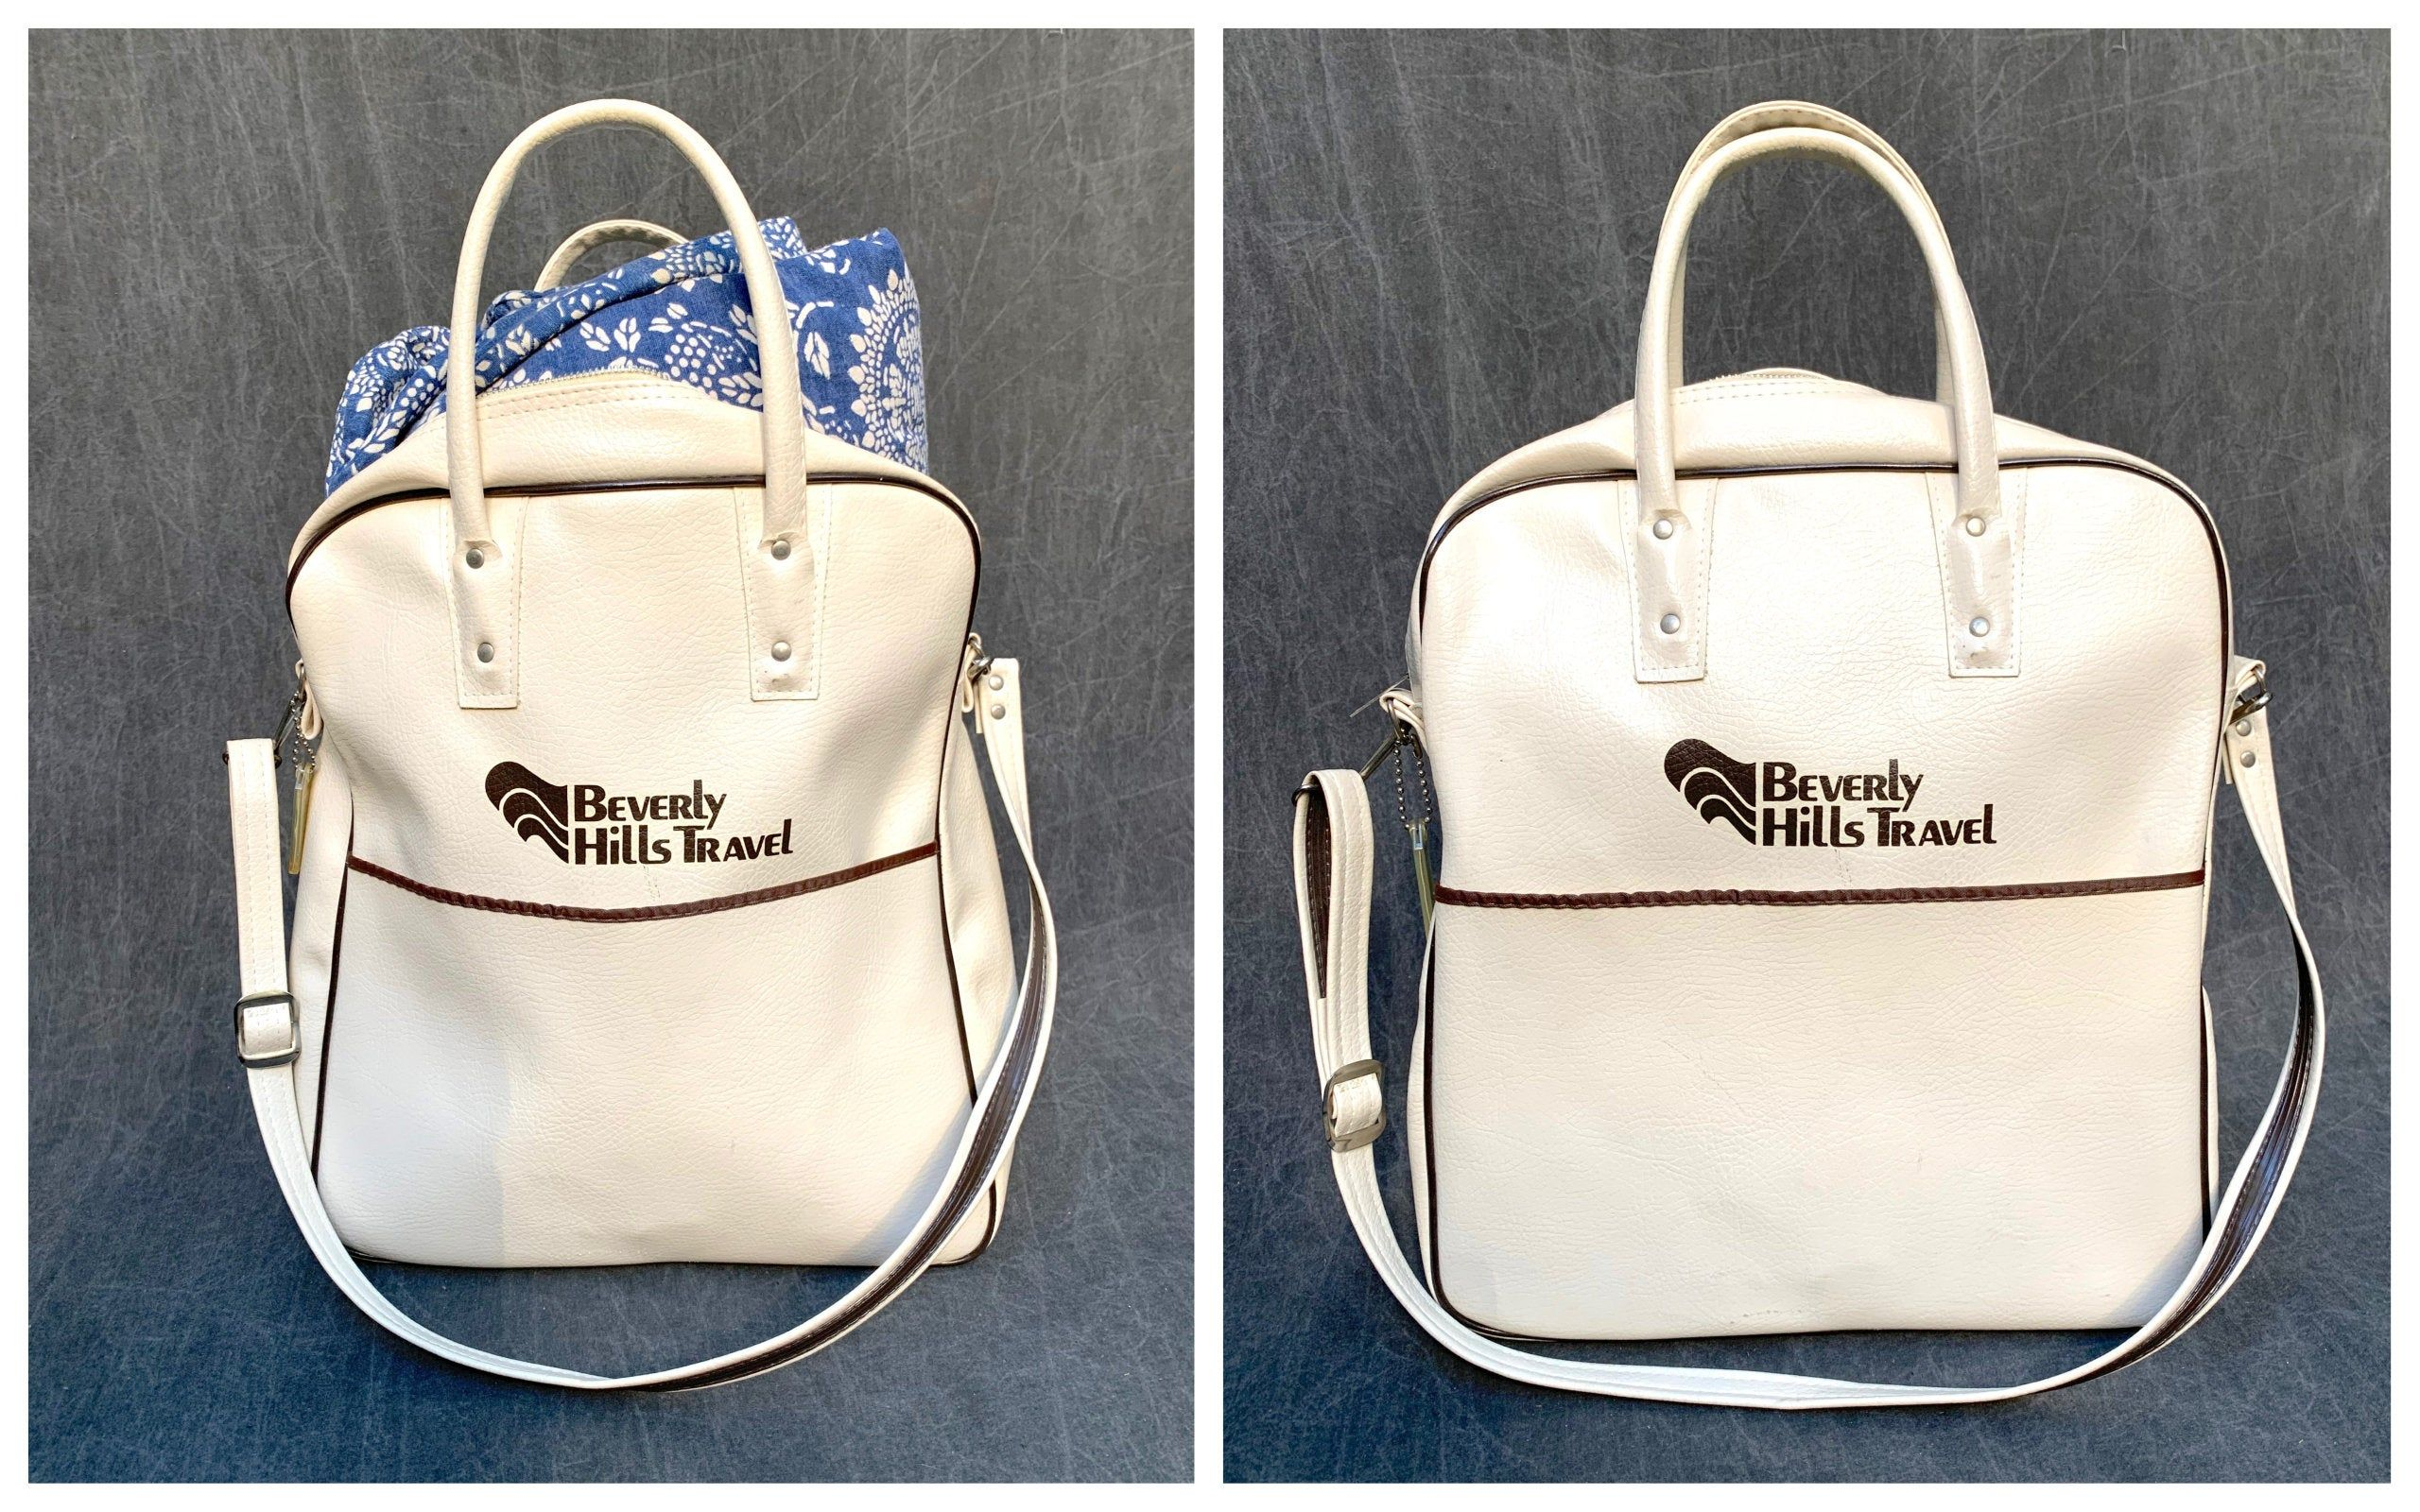 Vintage Vinyl Travel Bag White Beverly Hills Travel With Top Handles Shoulder Strap And Front Pocket In 2020 White Bag Bags Travel Bag